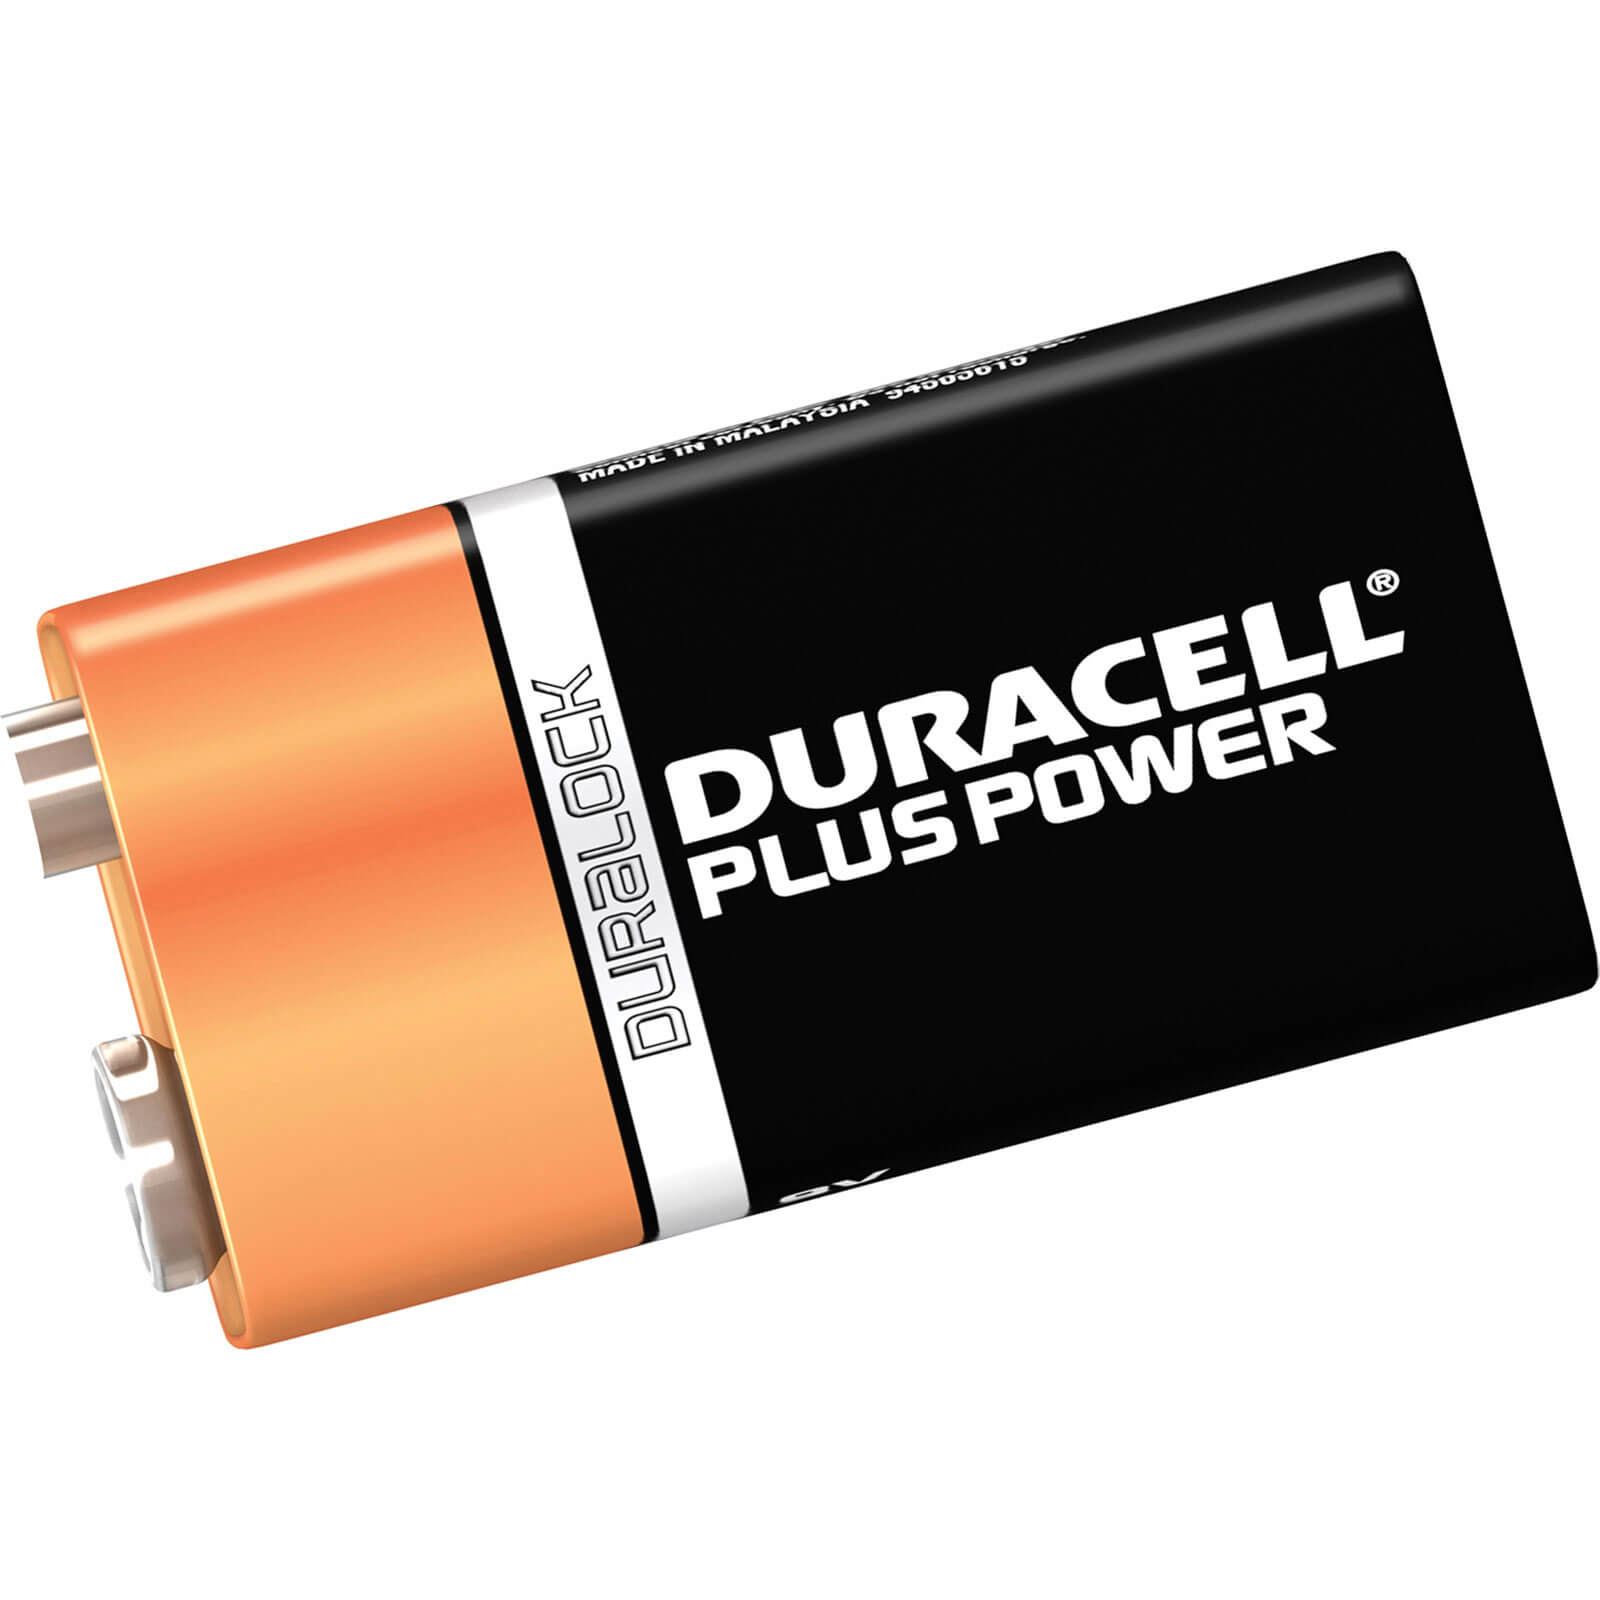 Image of Duracell 9v Plus Power Battery Pack of 1